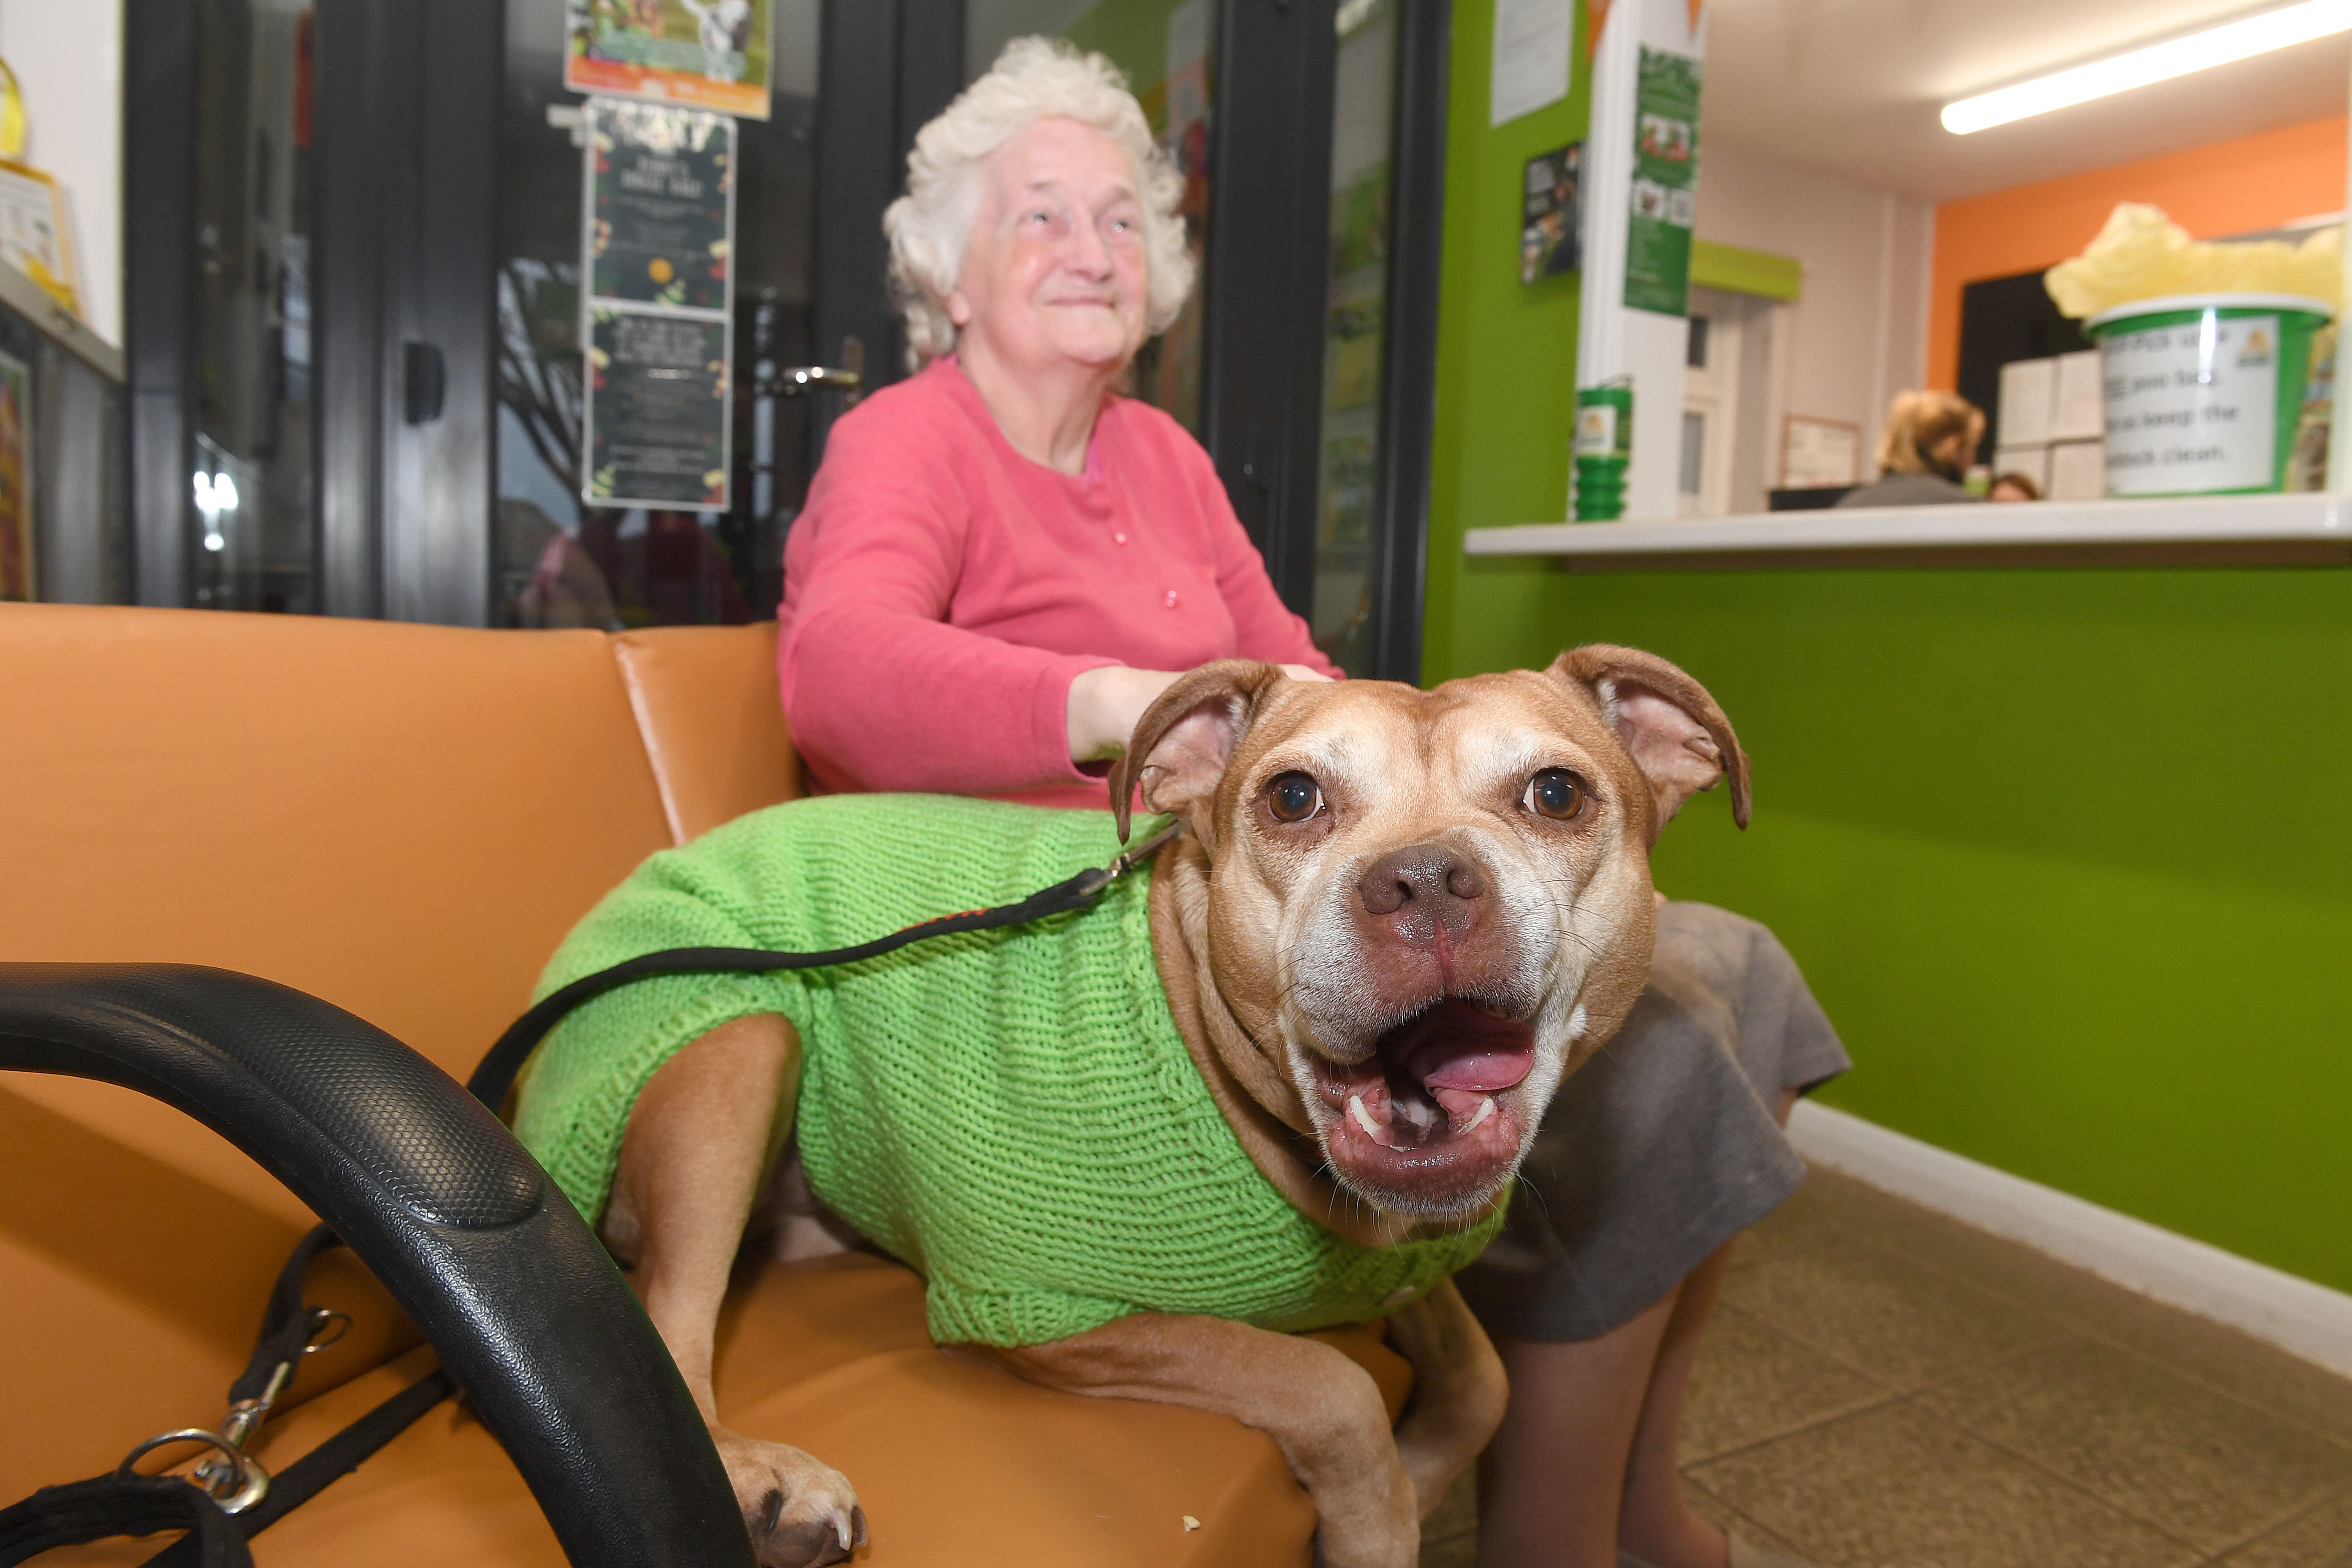 Residents Knit Coats for Dogs